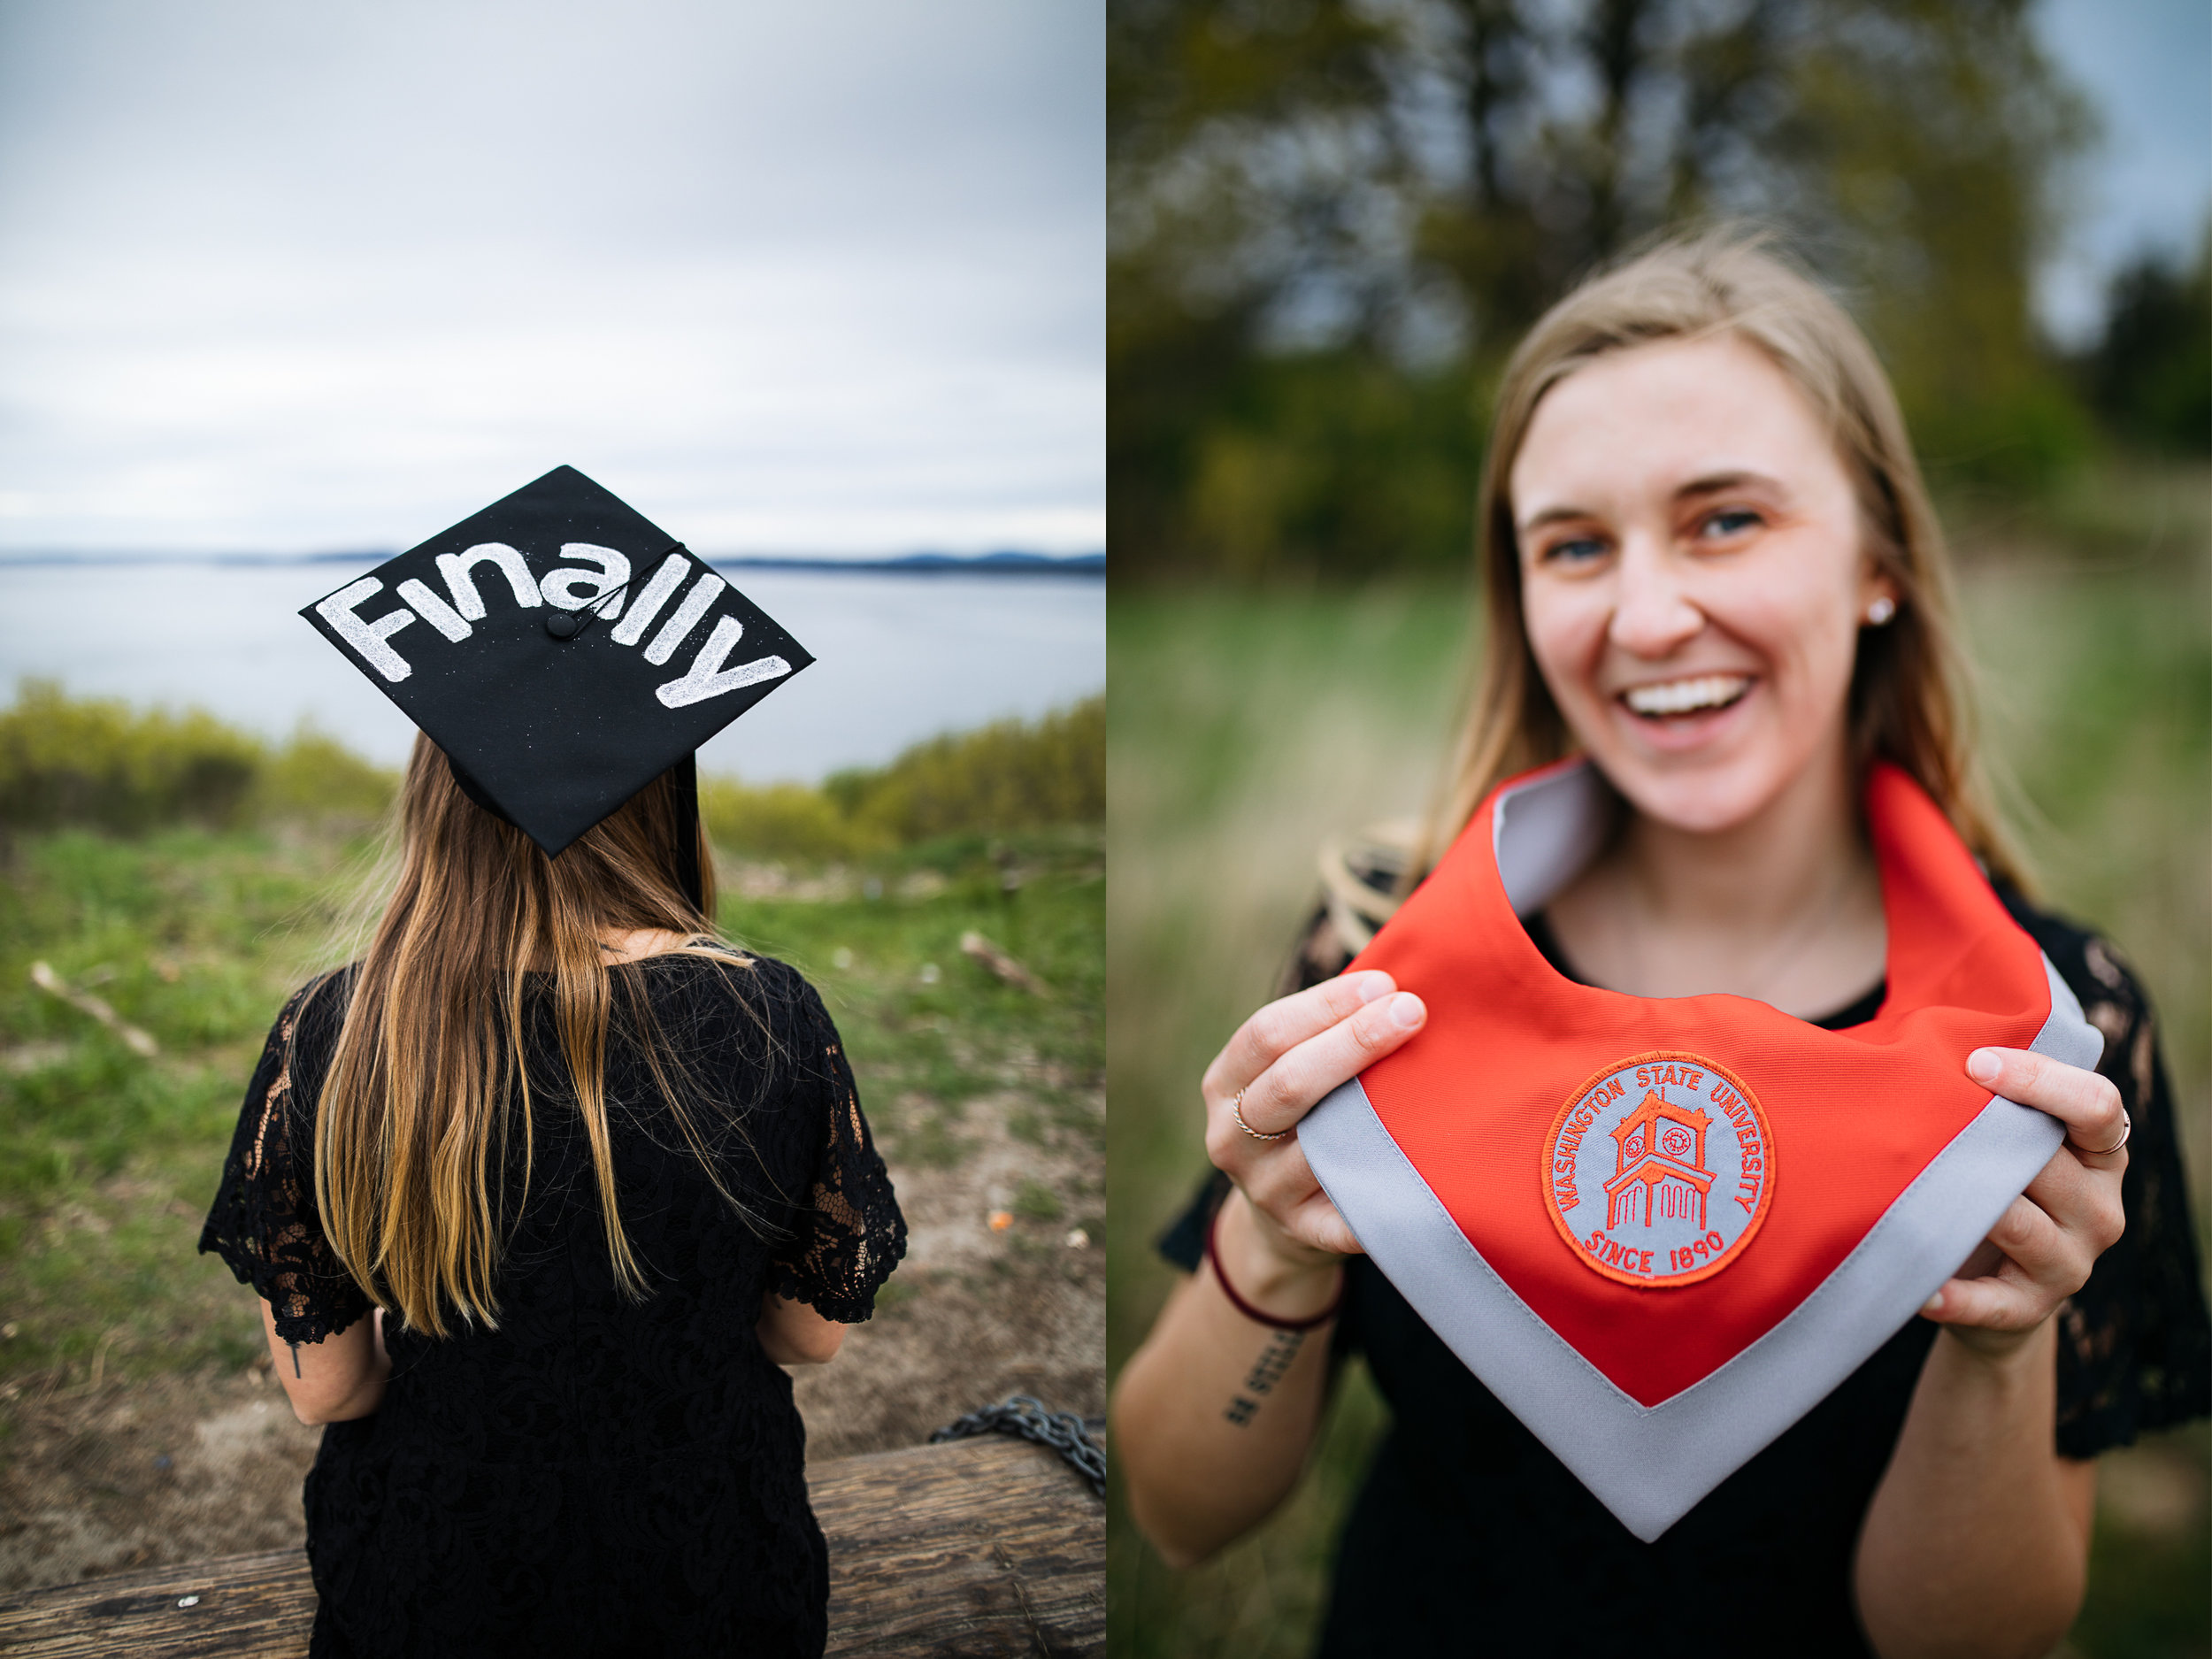 4-20-2018 Sarah Graduation Photos Blog Diptych 2.jpg